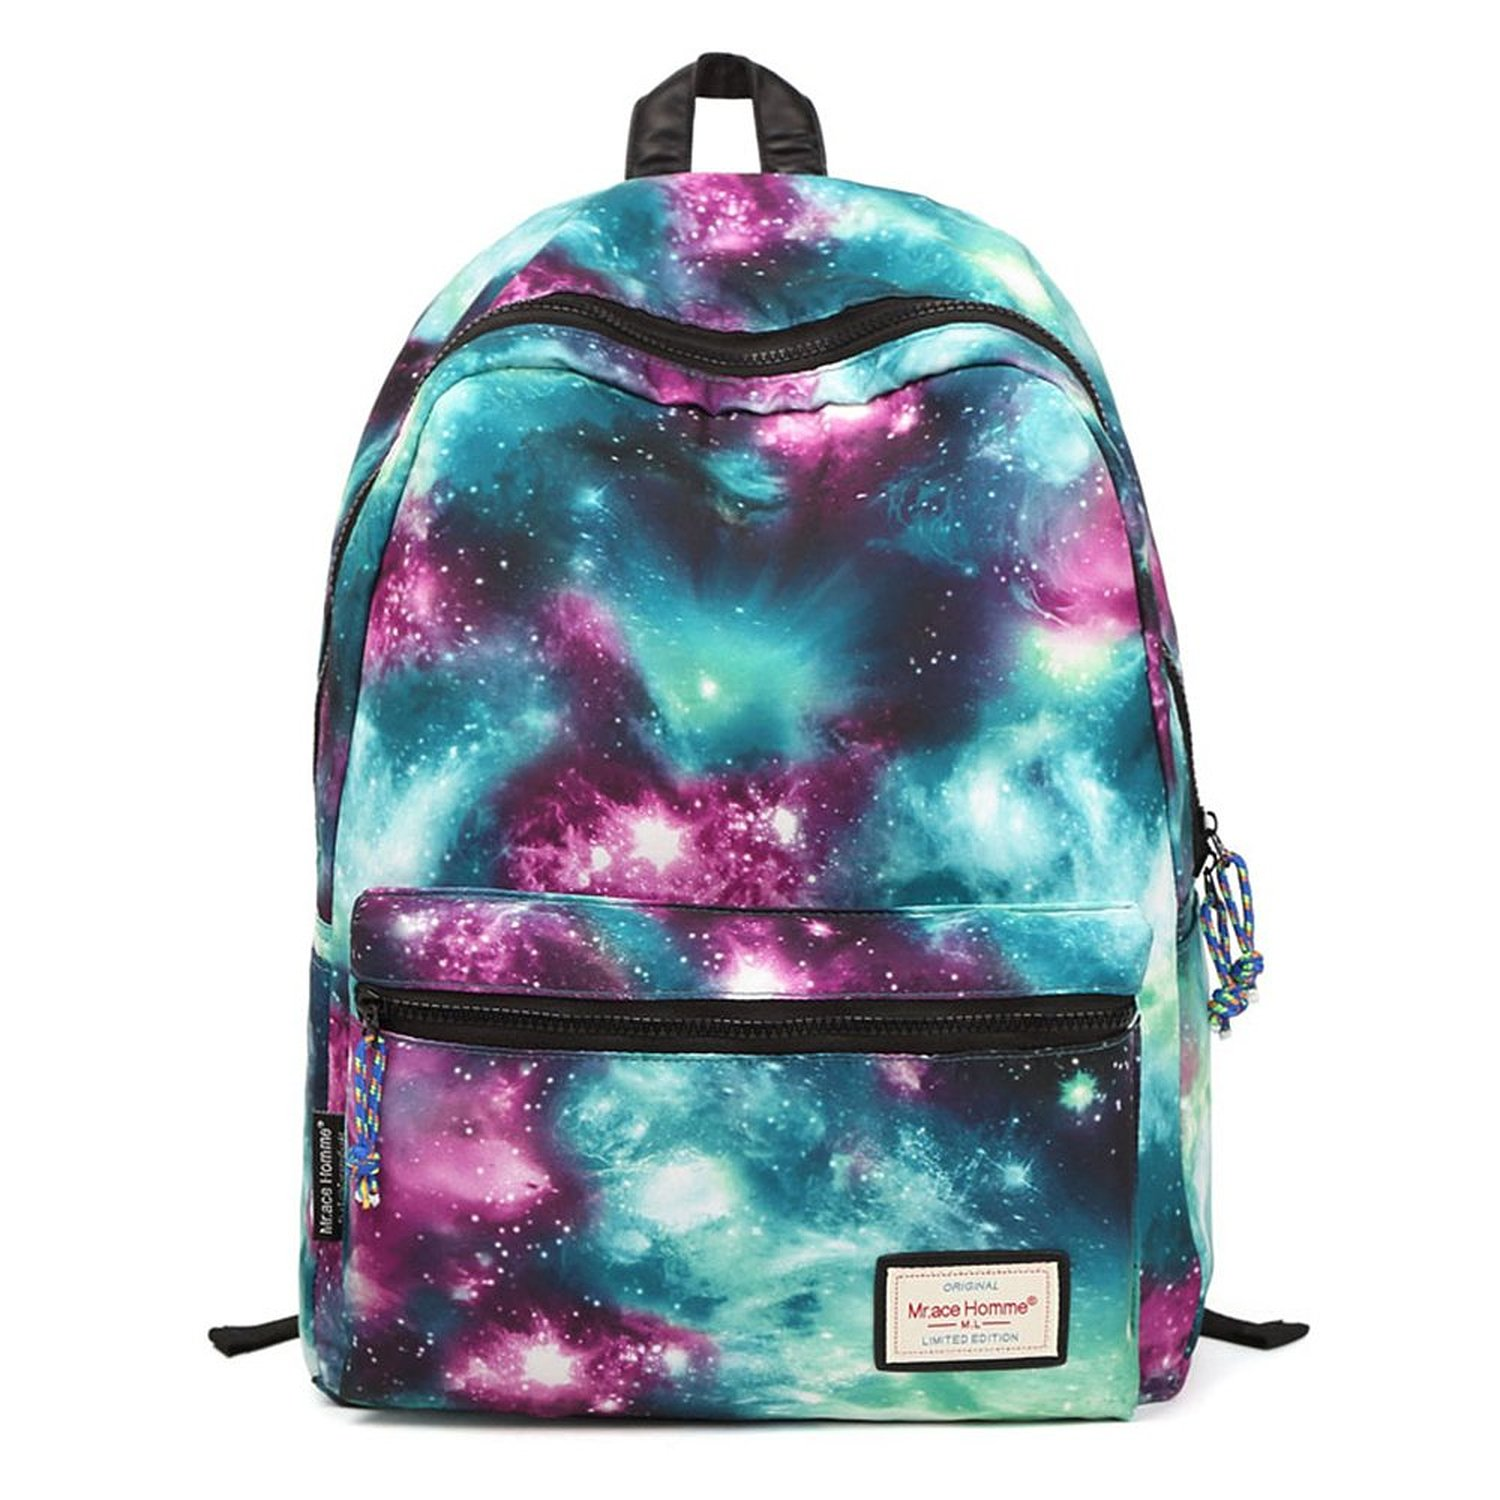 1b853aabbd Amazon.com  HotStyle TrendyMax Galaxy Pattern Vintage Style Unisex Fashion  Casual School Travel Laptop Backpack Rucksack ...